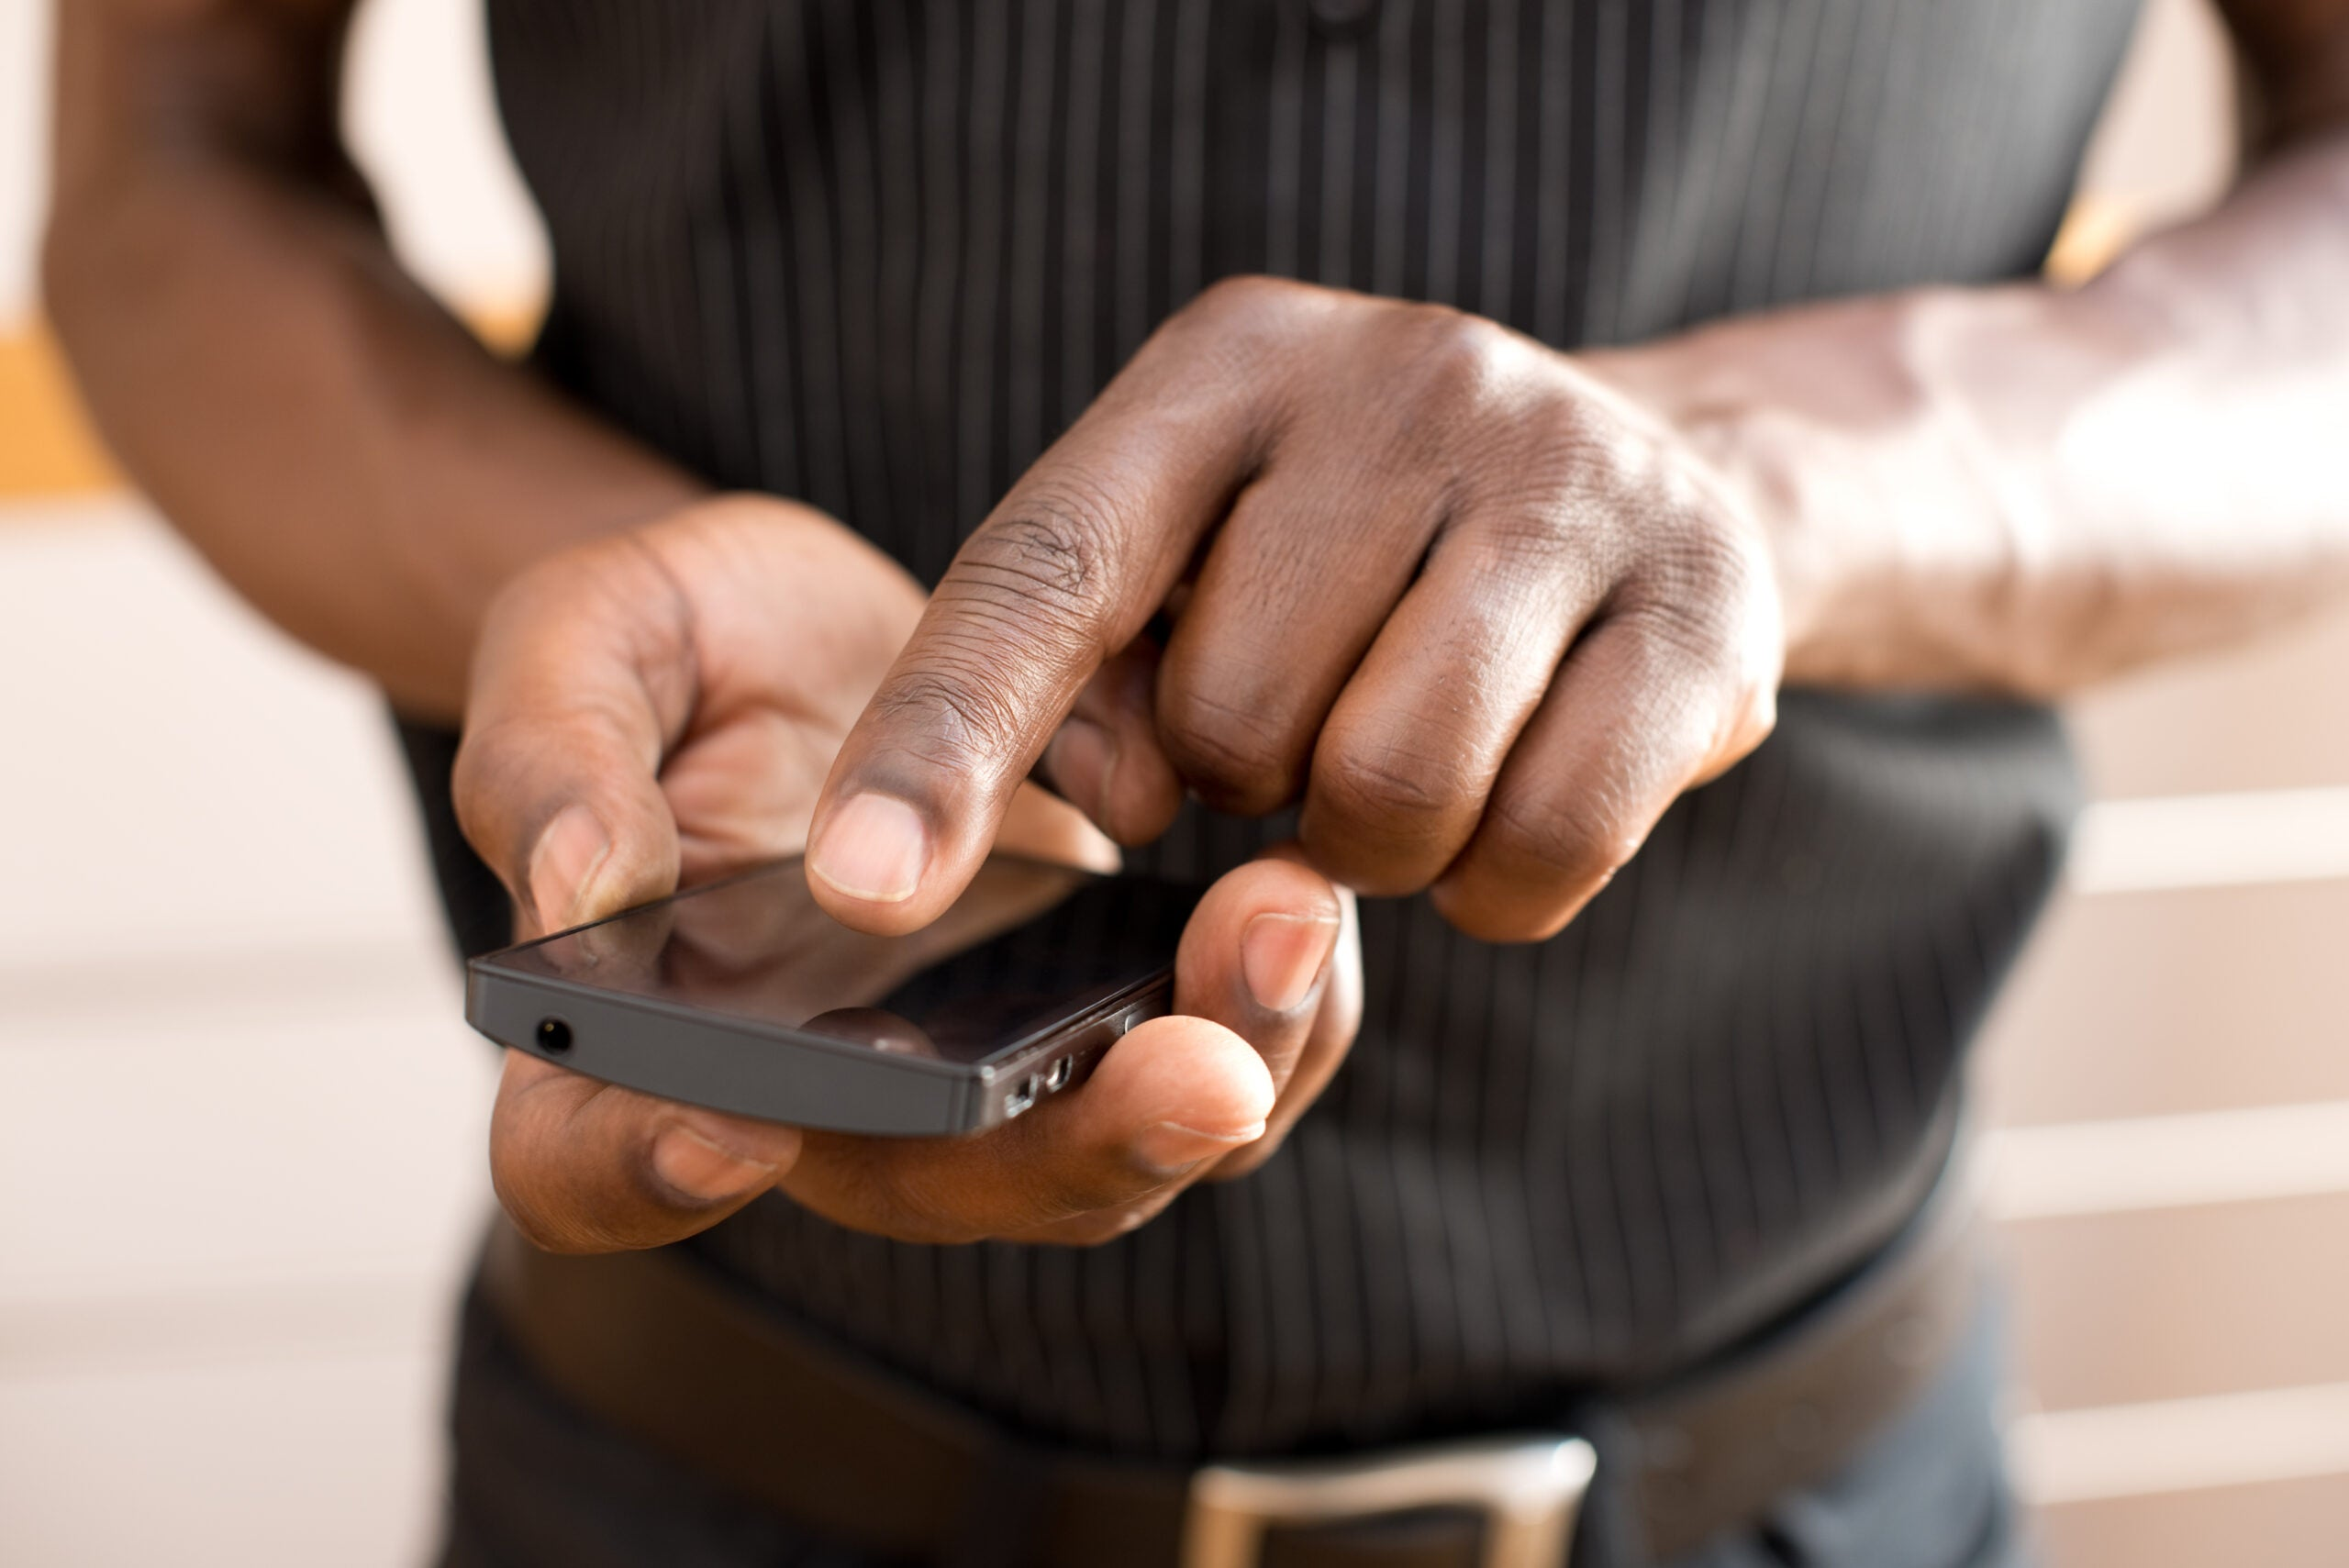 Your smartphone is hijacking your brain. Here's how to stop it.